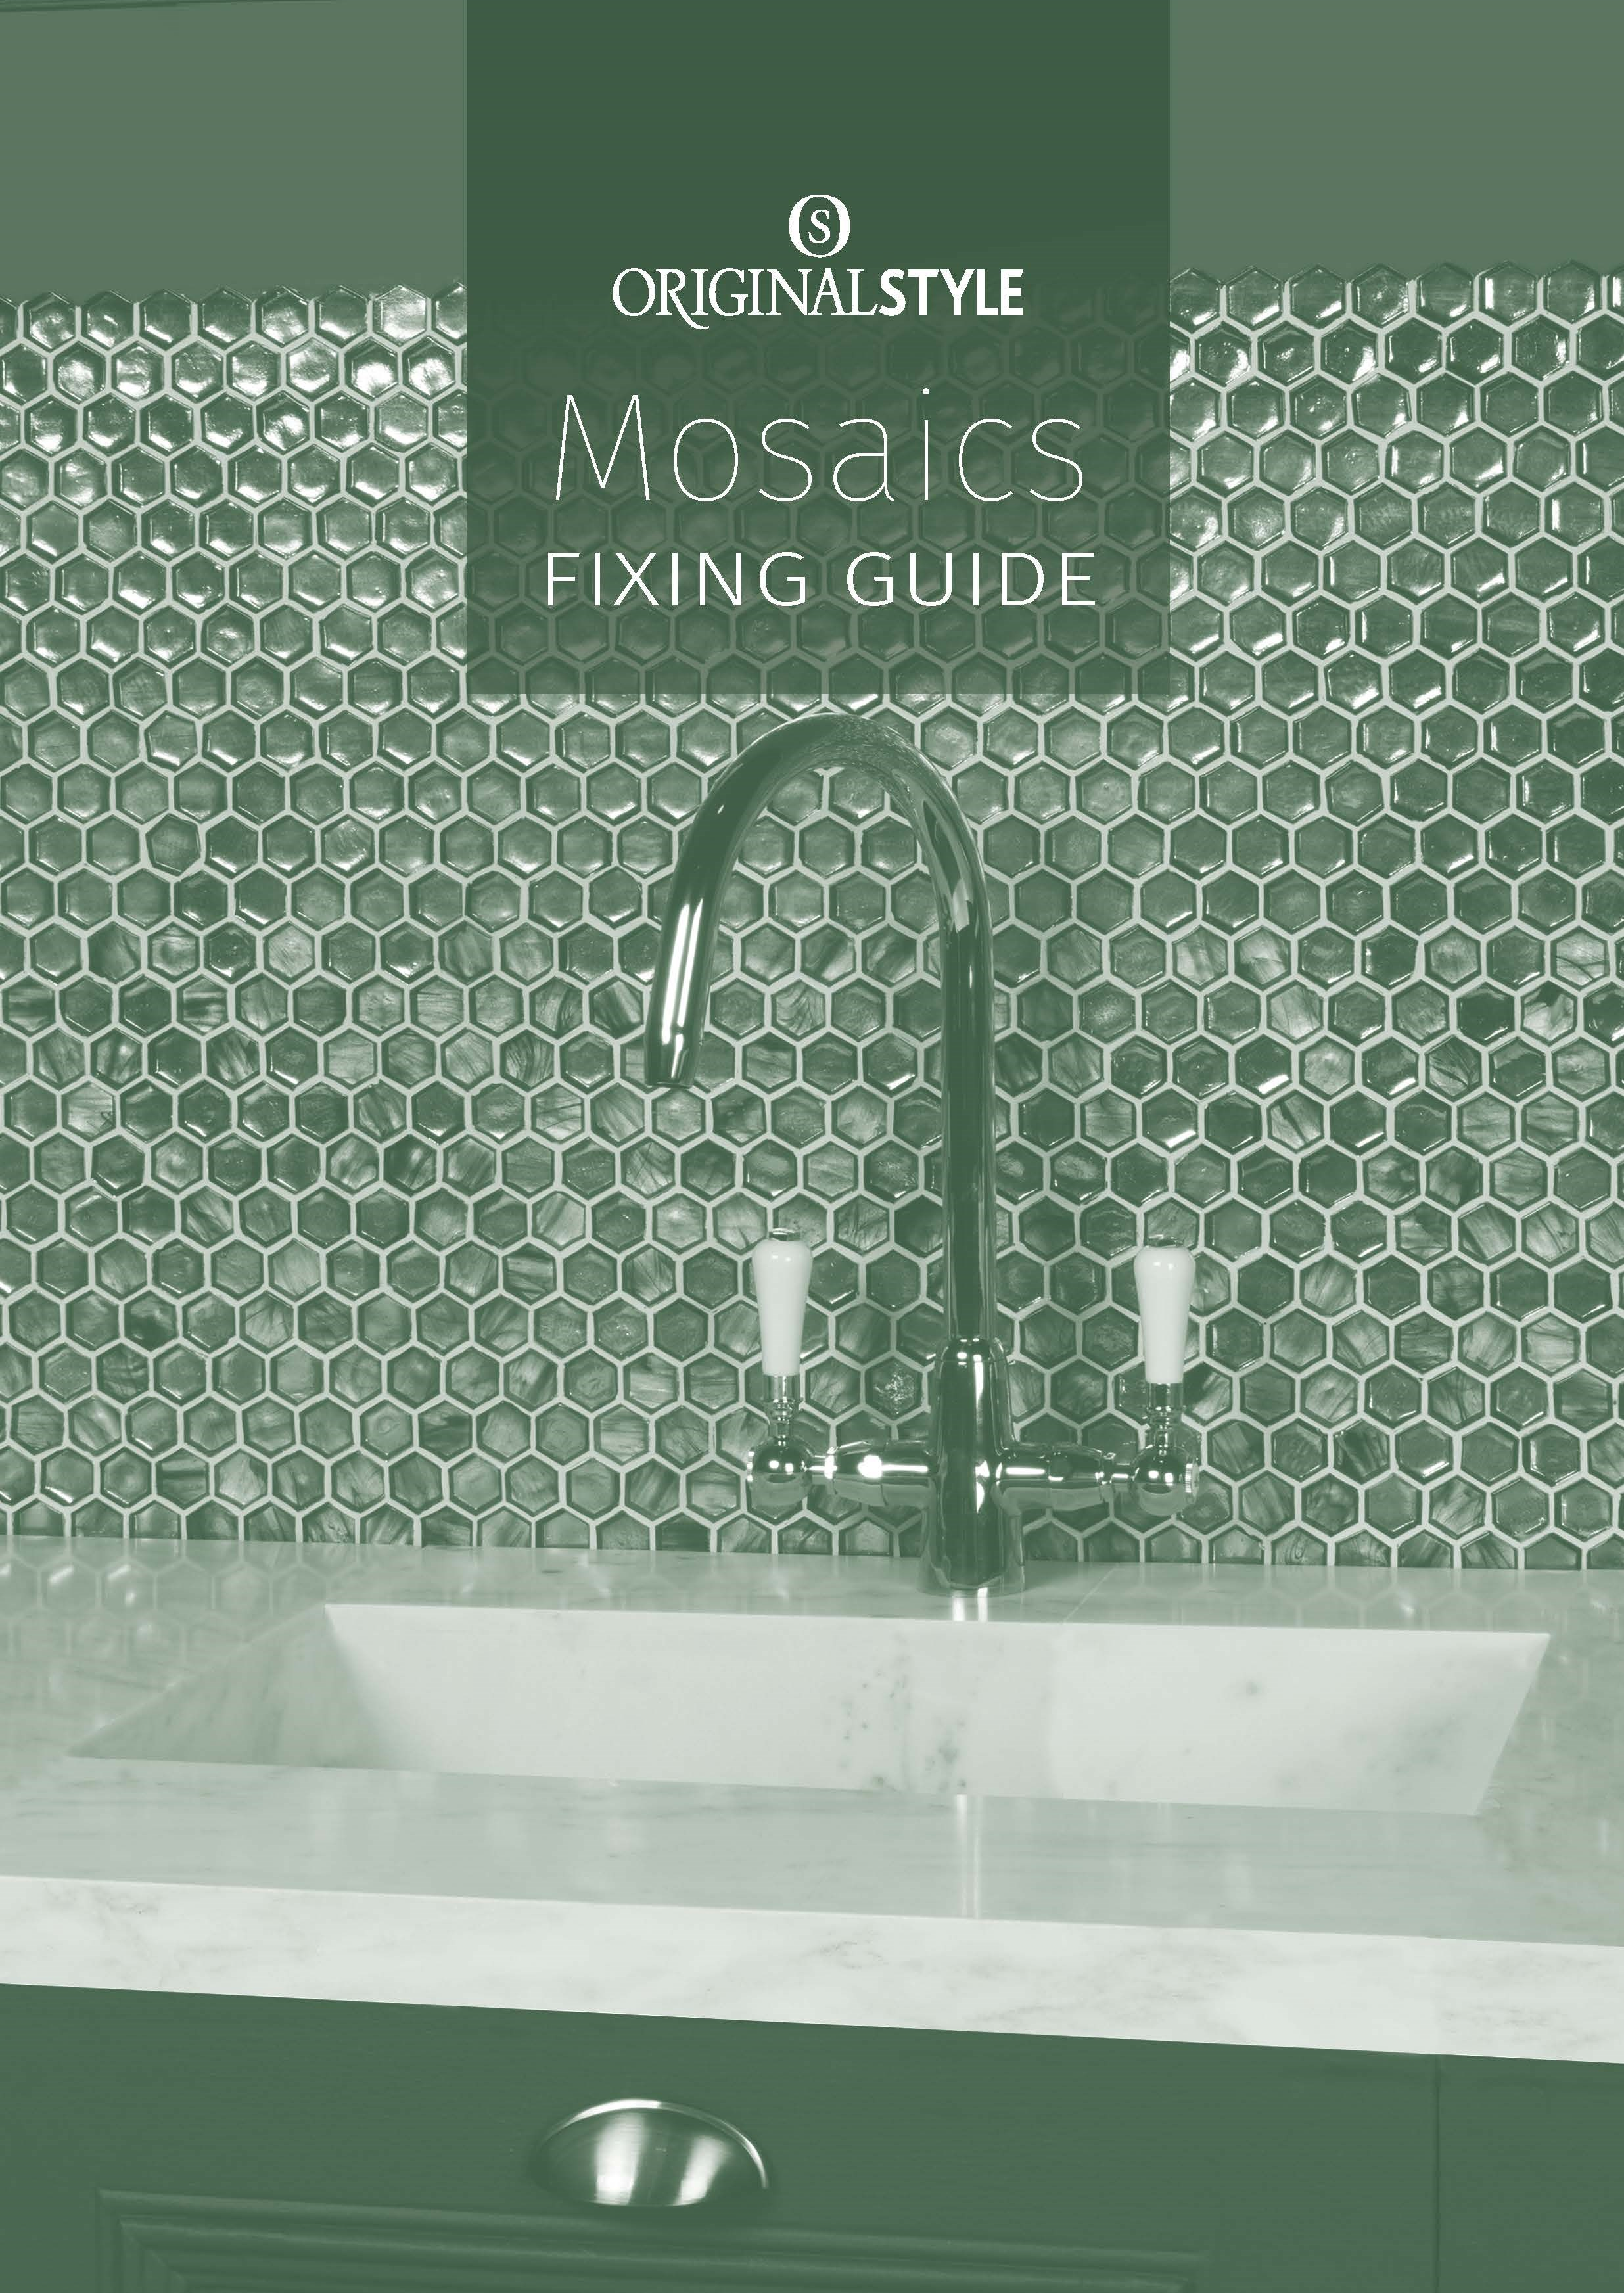 Mosaics Fixing Guide preview image